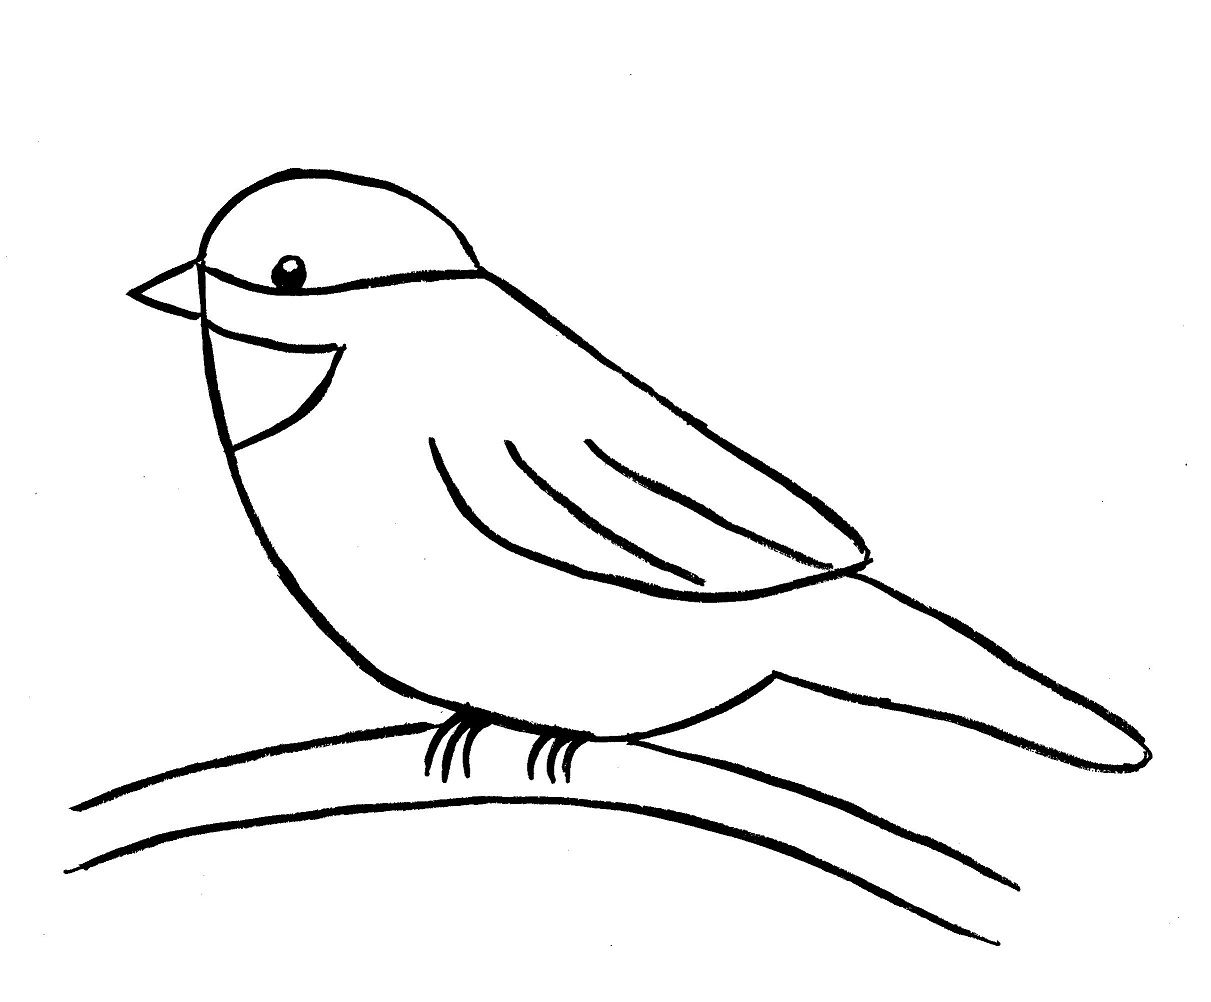 How To Draw A Bird Step By Step Easy With Pictures | Dessin à Dessin D Oiseau Simple